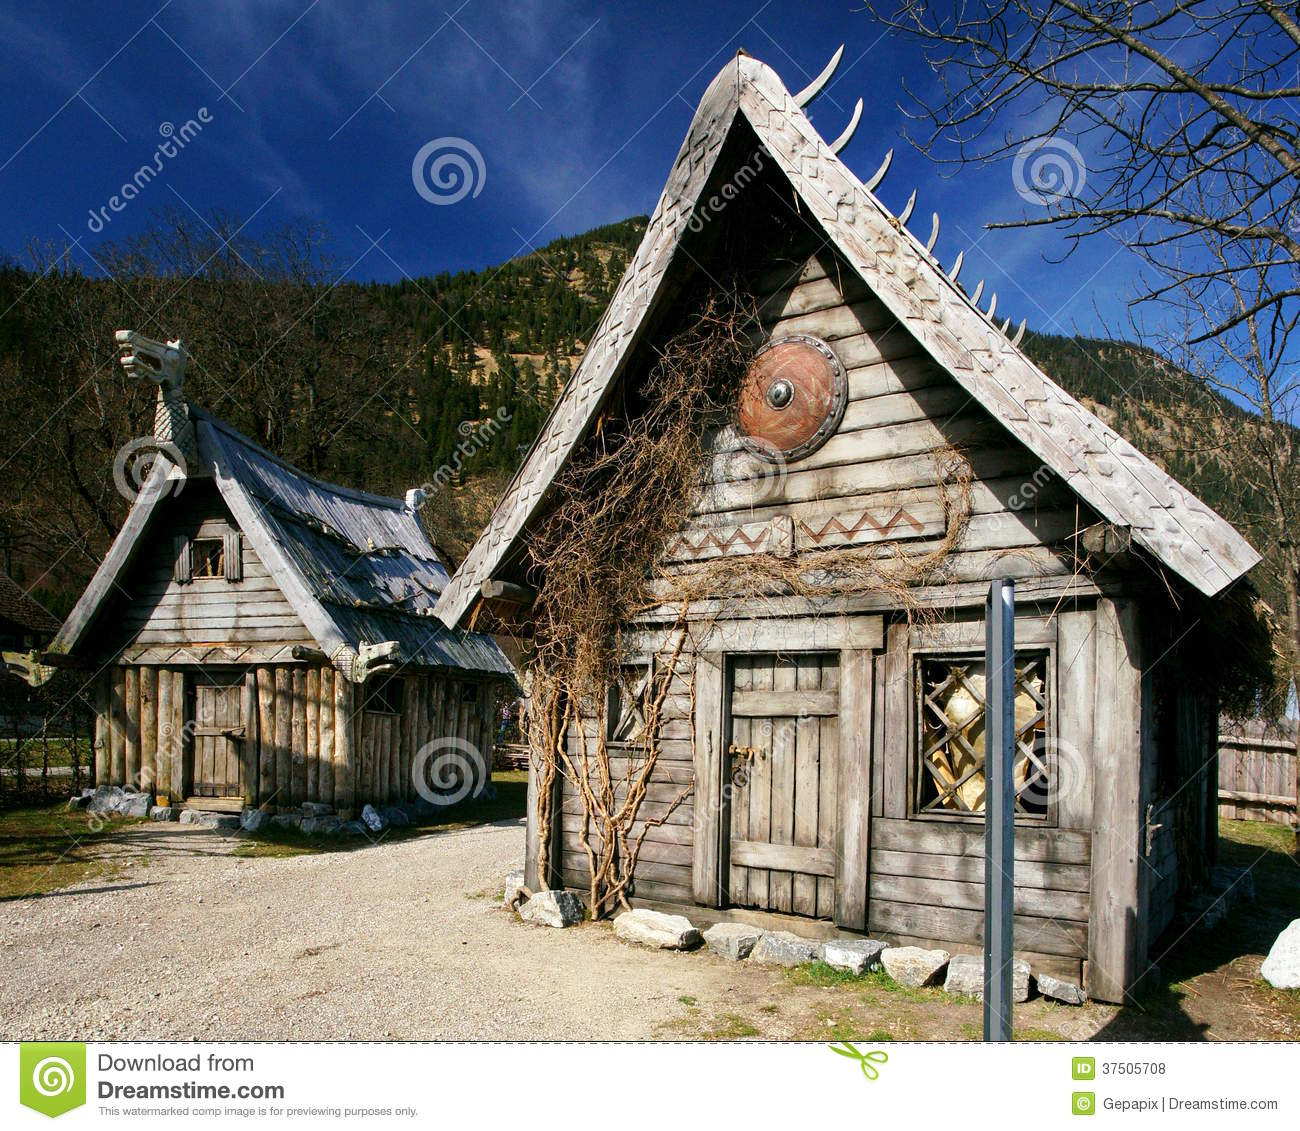 Viking Houses Editorial Stock Photo - Image: 37505708